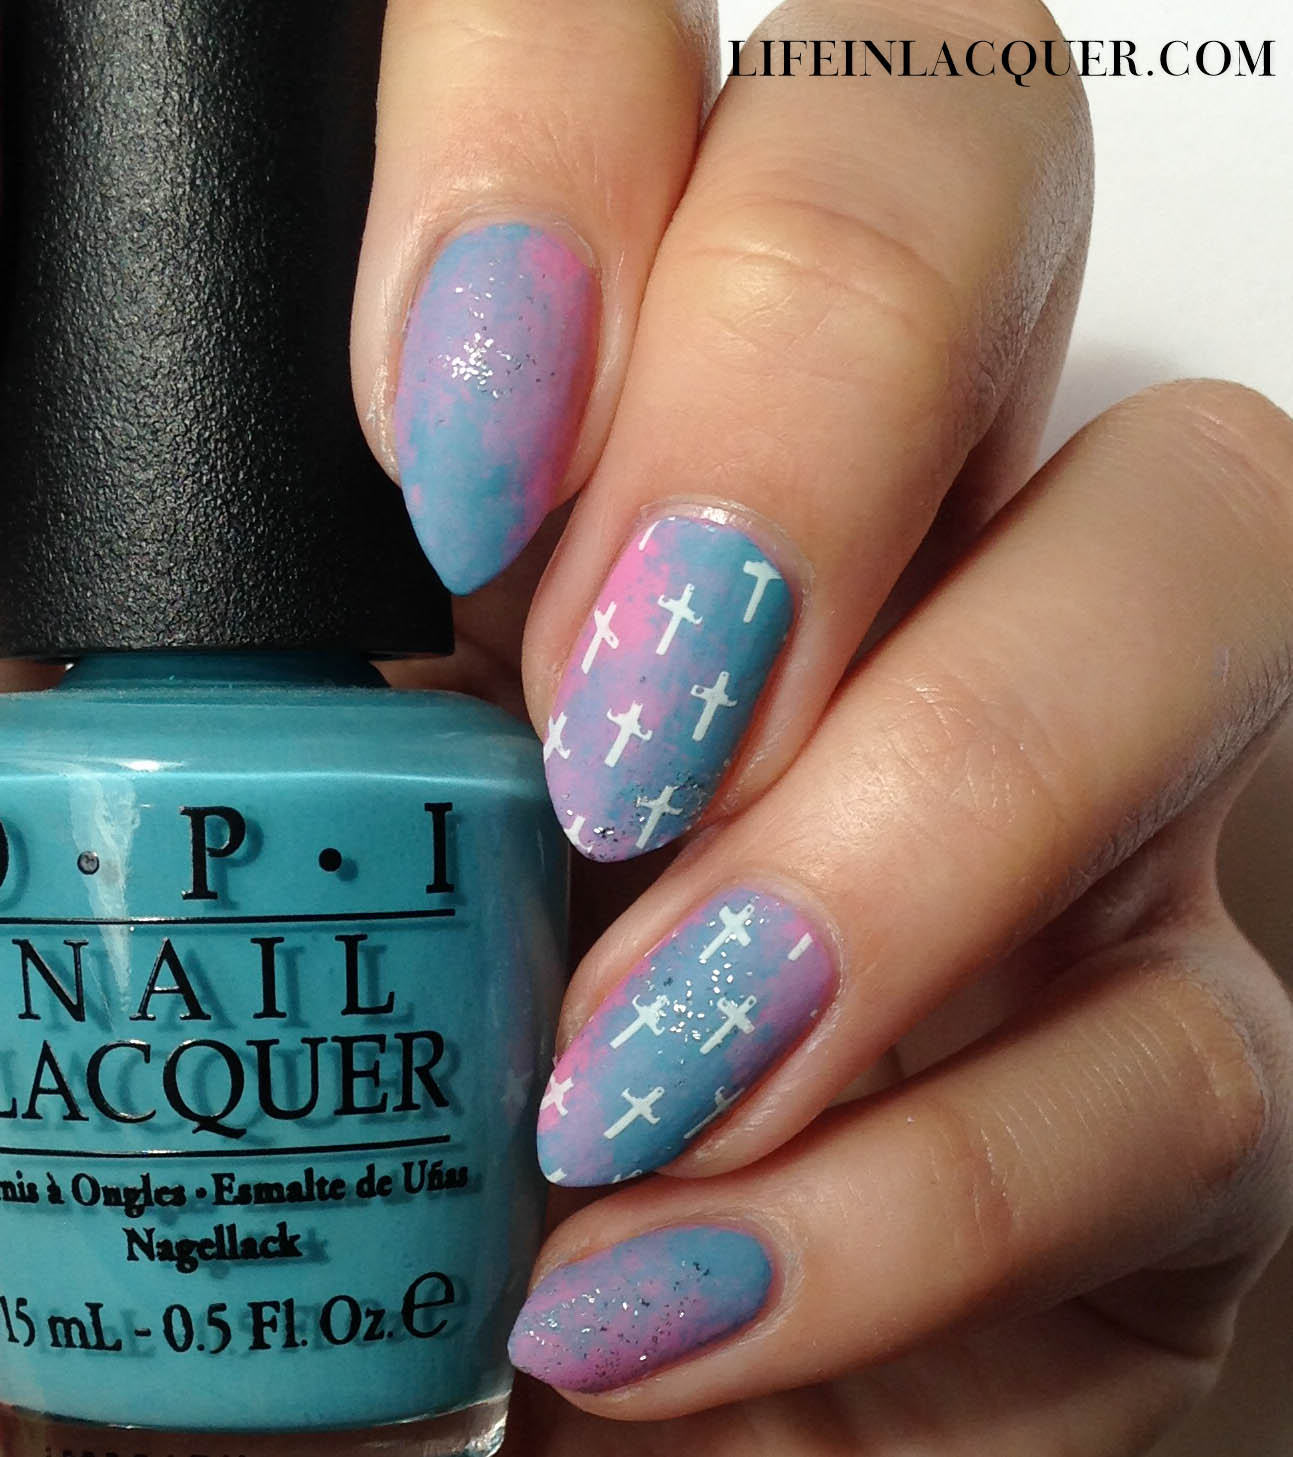 Life in Lacquer: Pastel Galaxy with MoYou London Stamping Nail Art ...